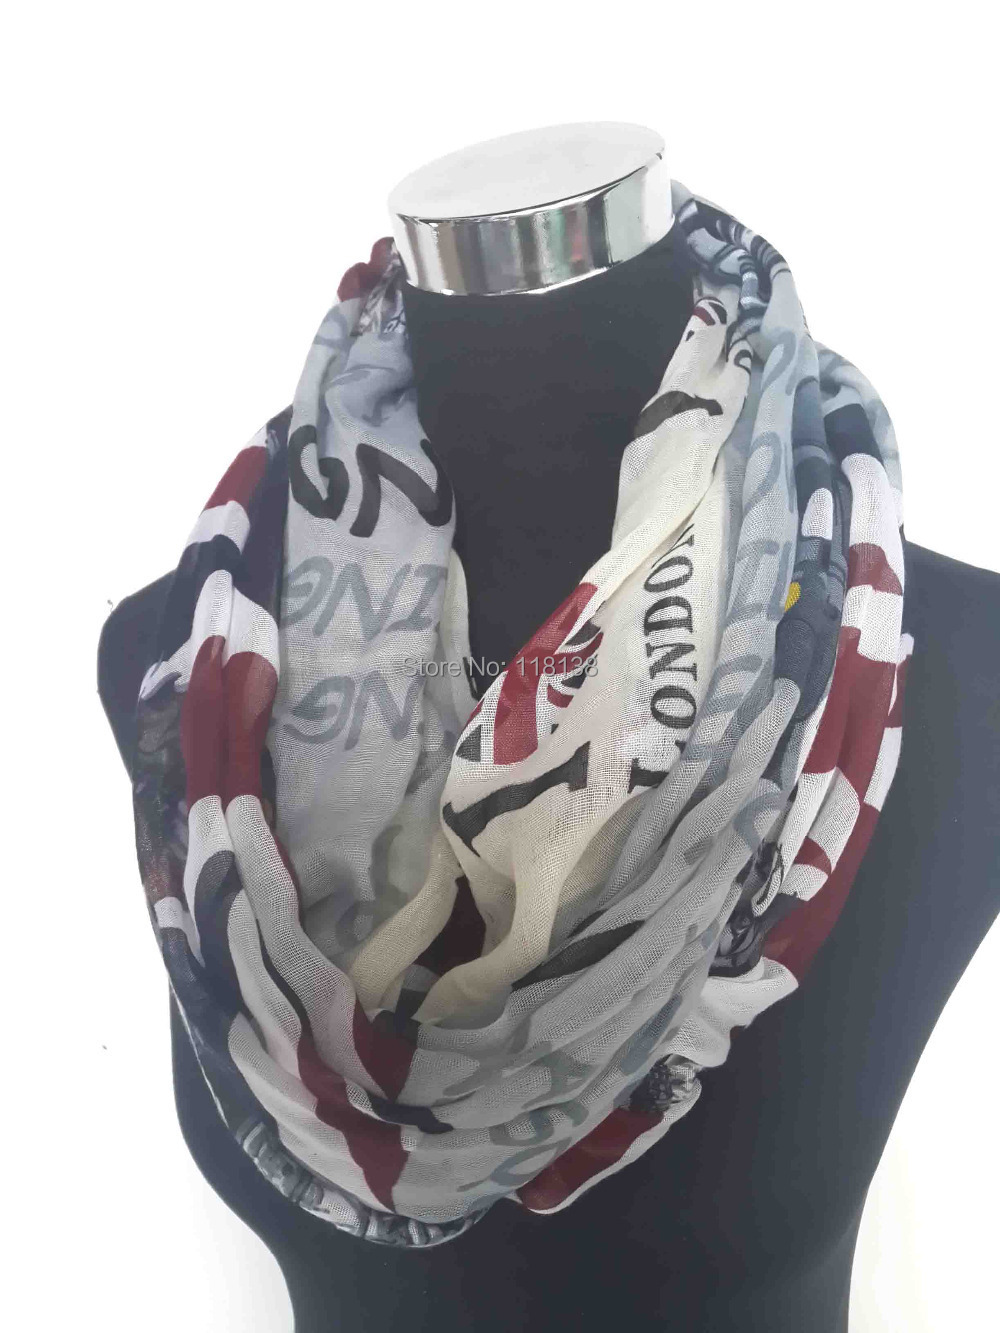 I Love London Souvenir Union Jack Cambridge Scene Print Infinity Scarf Accessories Voile Scarves, Free Shipping(China (Mainland))